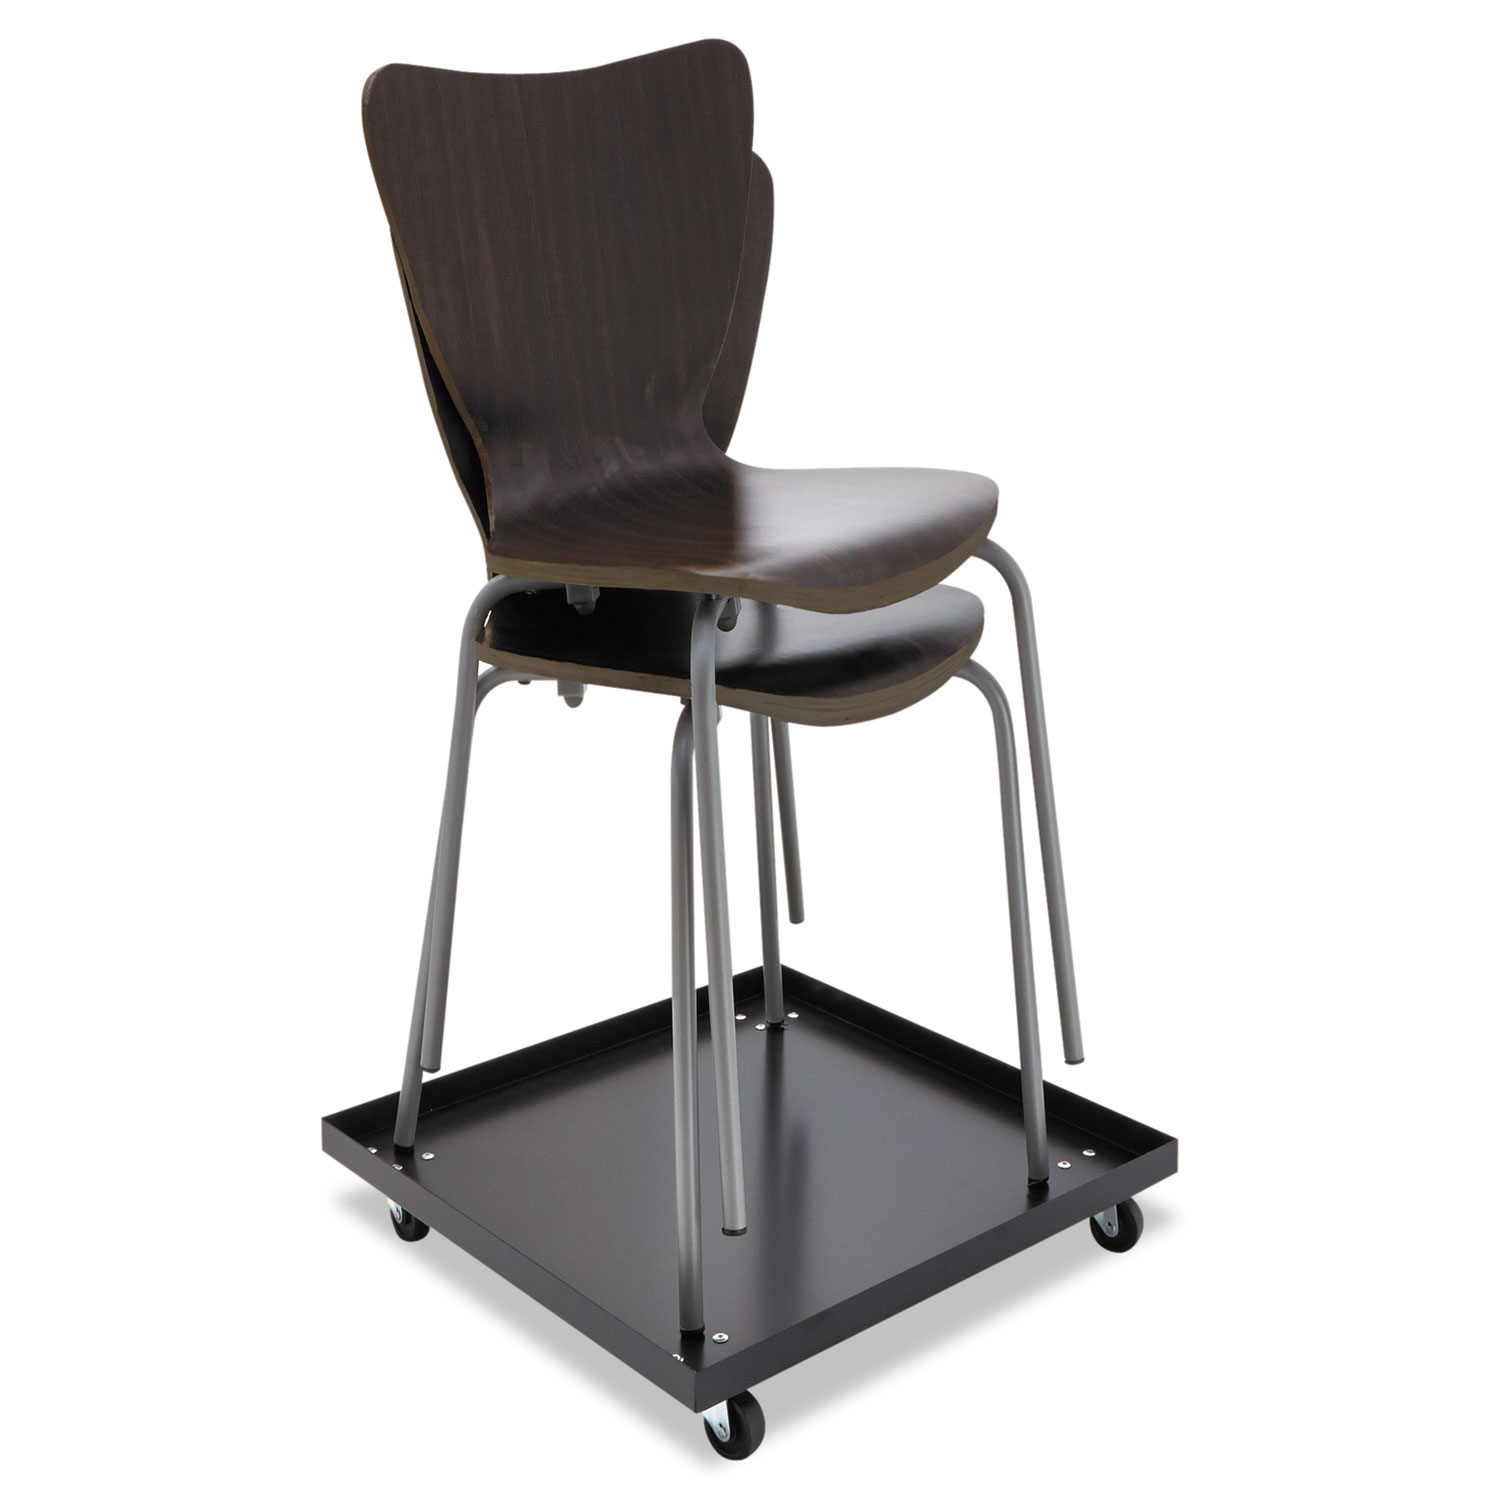 staples stacking chairs hon ignition task chair dolly by alera alesccart ontimesupplies